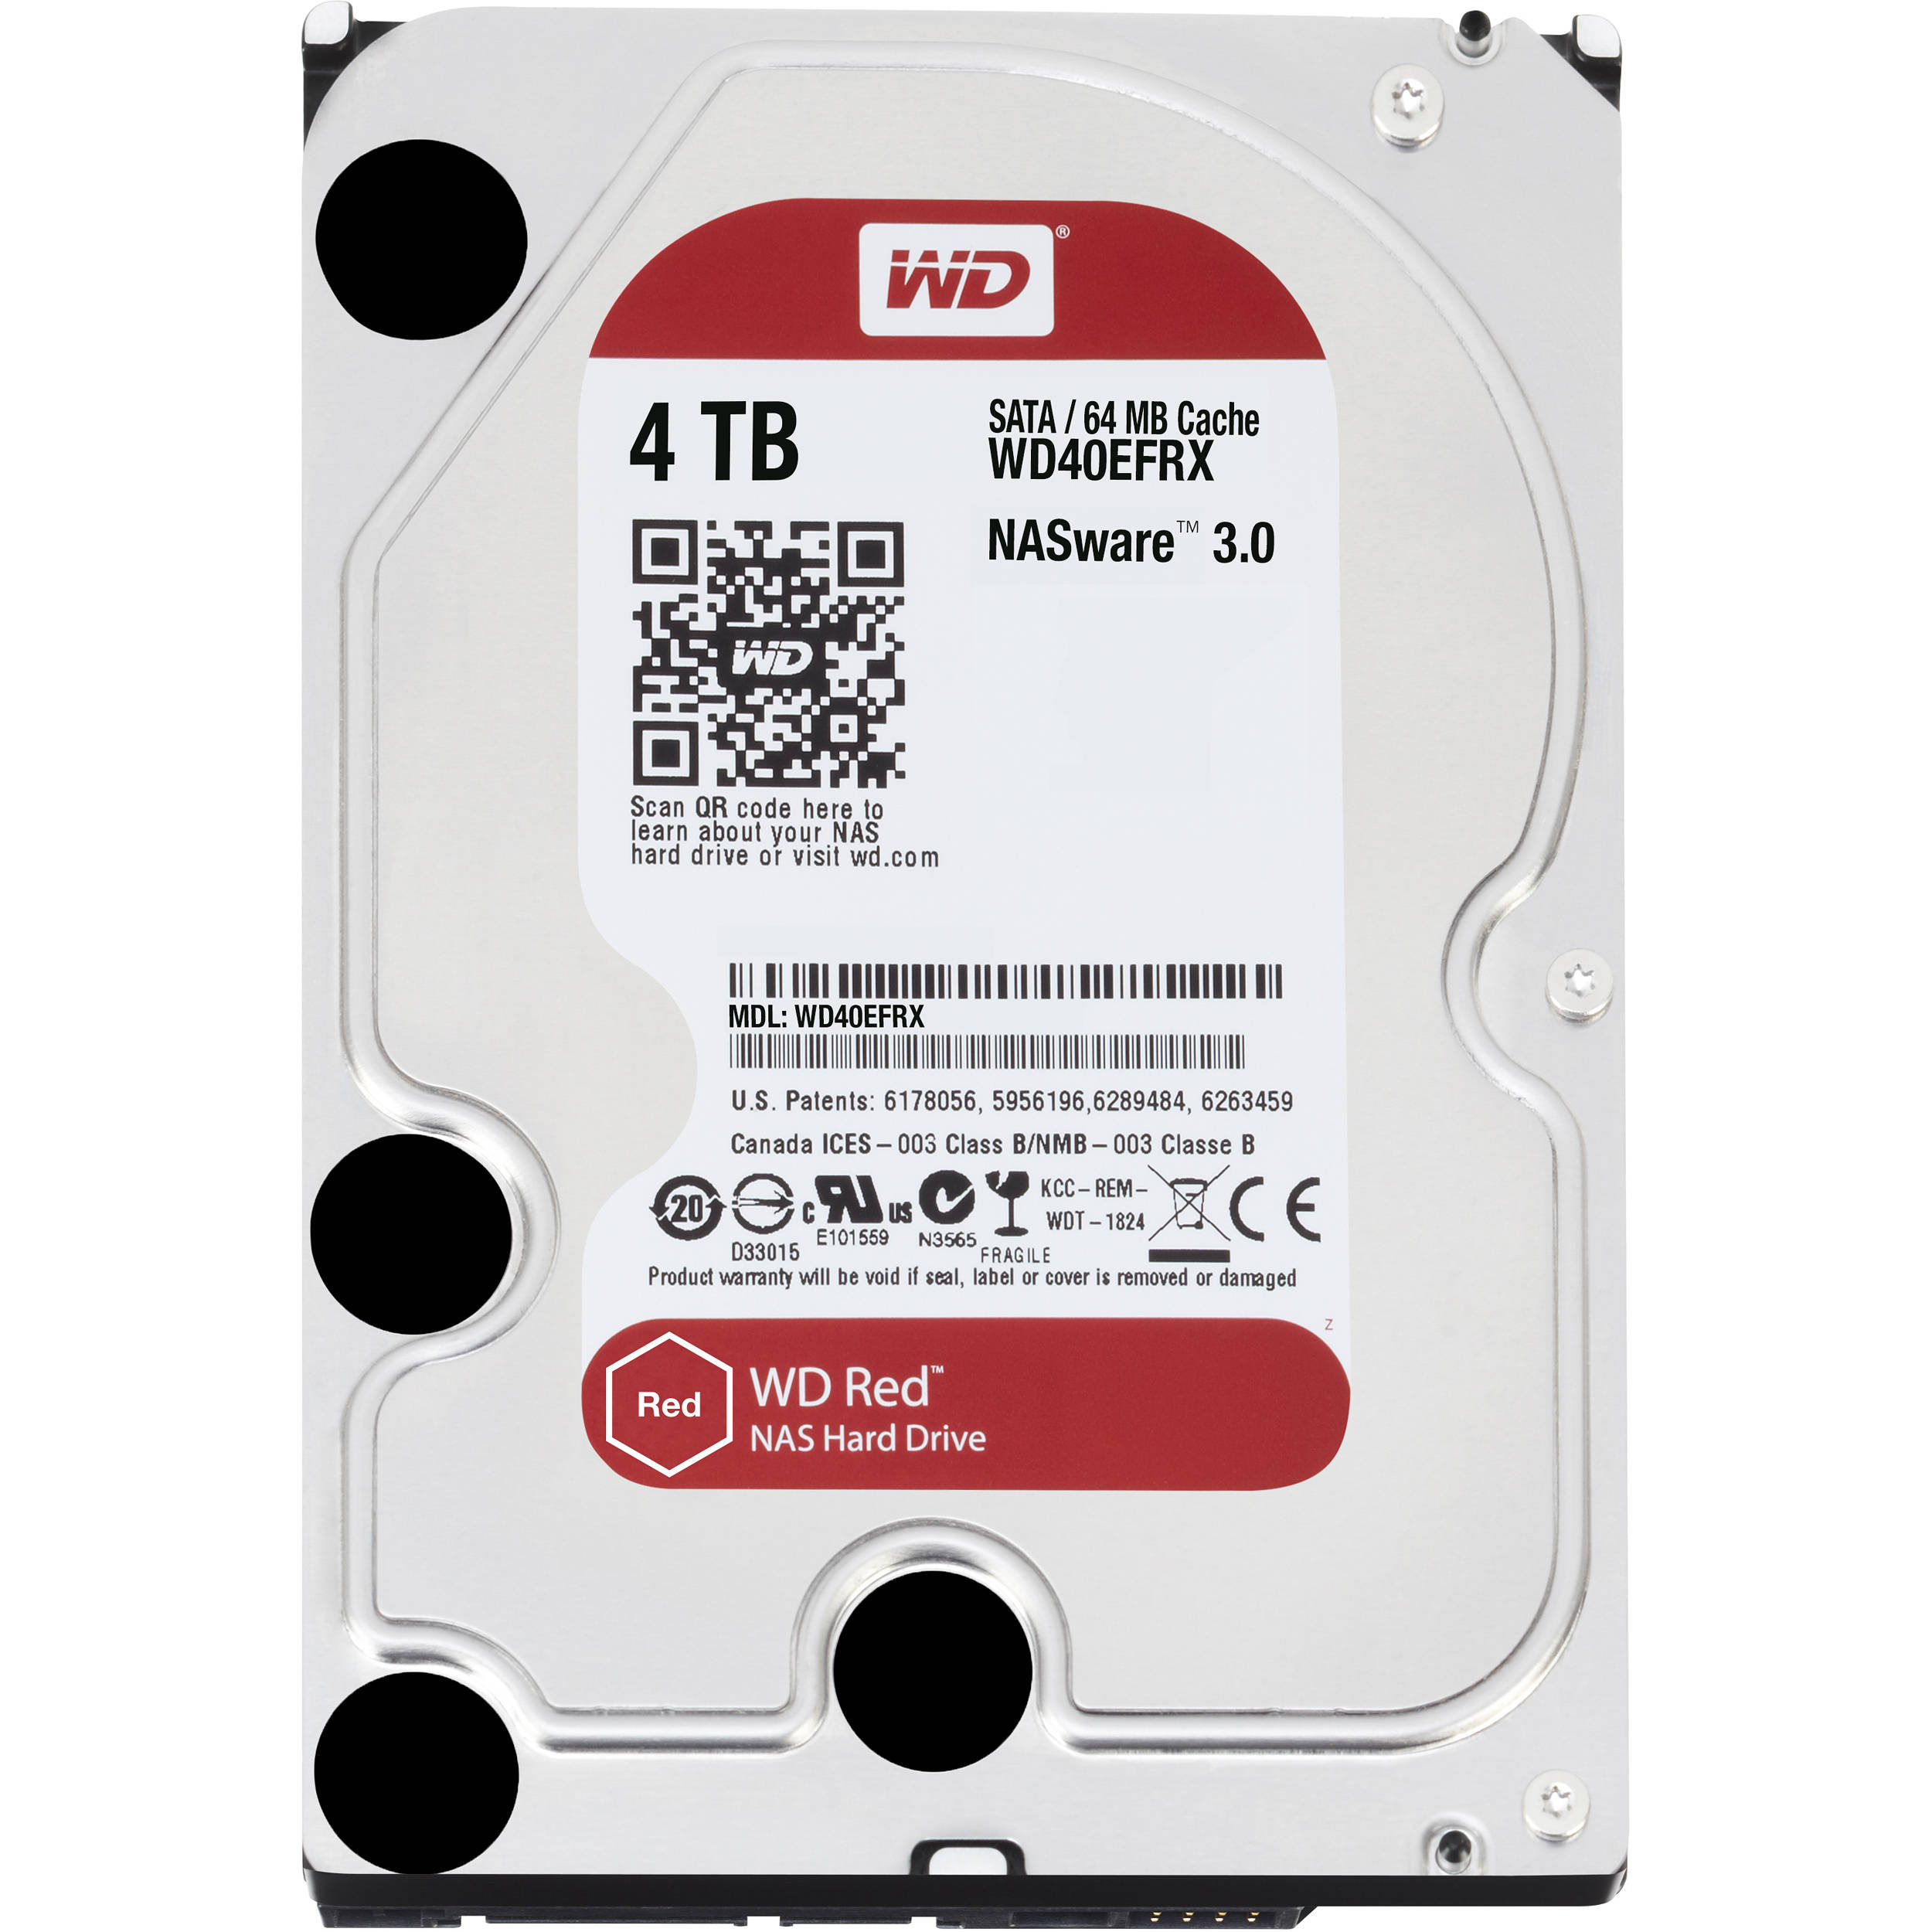 Showy Nas Wd Red Rpm Sata Iii Internal Nas Hdd Wd Red Rpm Sata Iii Internal Nas Hdd 5400rpm Vs 7200rpm Power Consumption 5400rpm Vs 7200rpm dpreview 5400rpm Vs 7200rpm